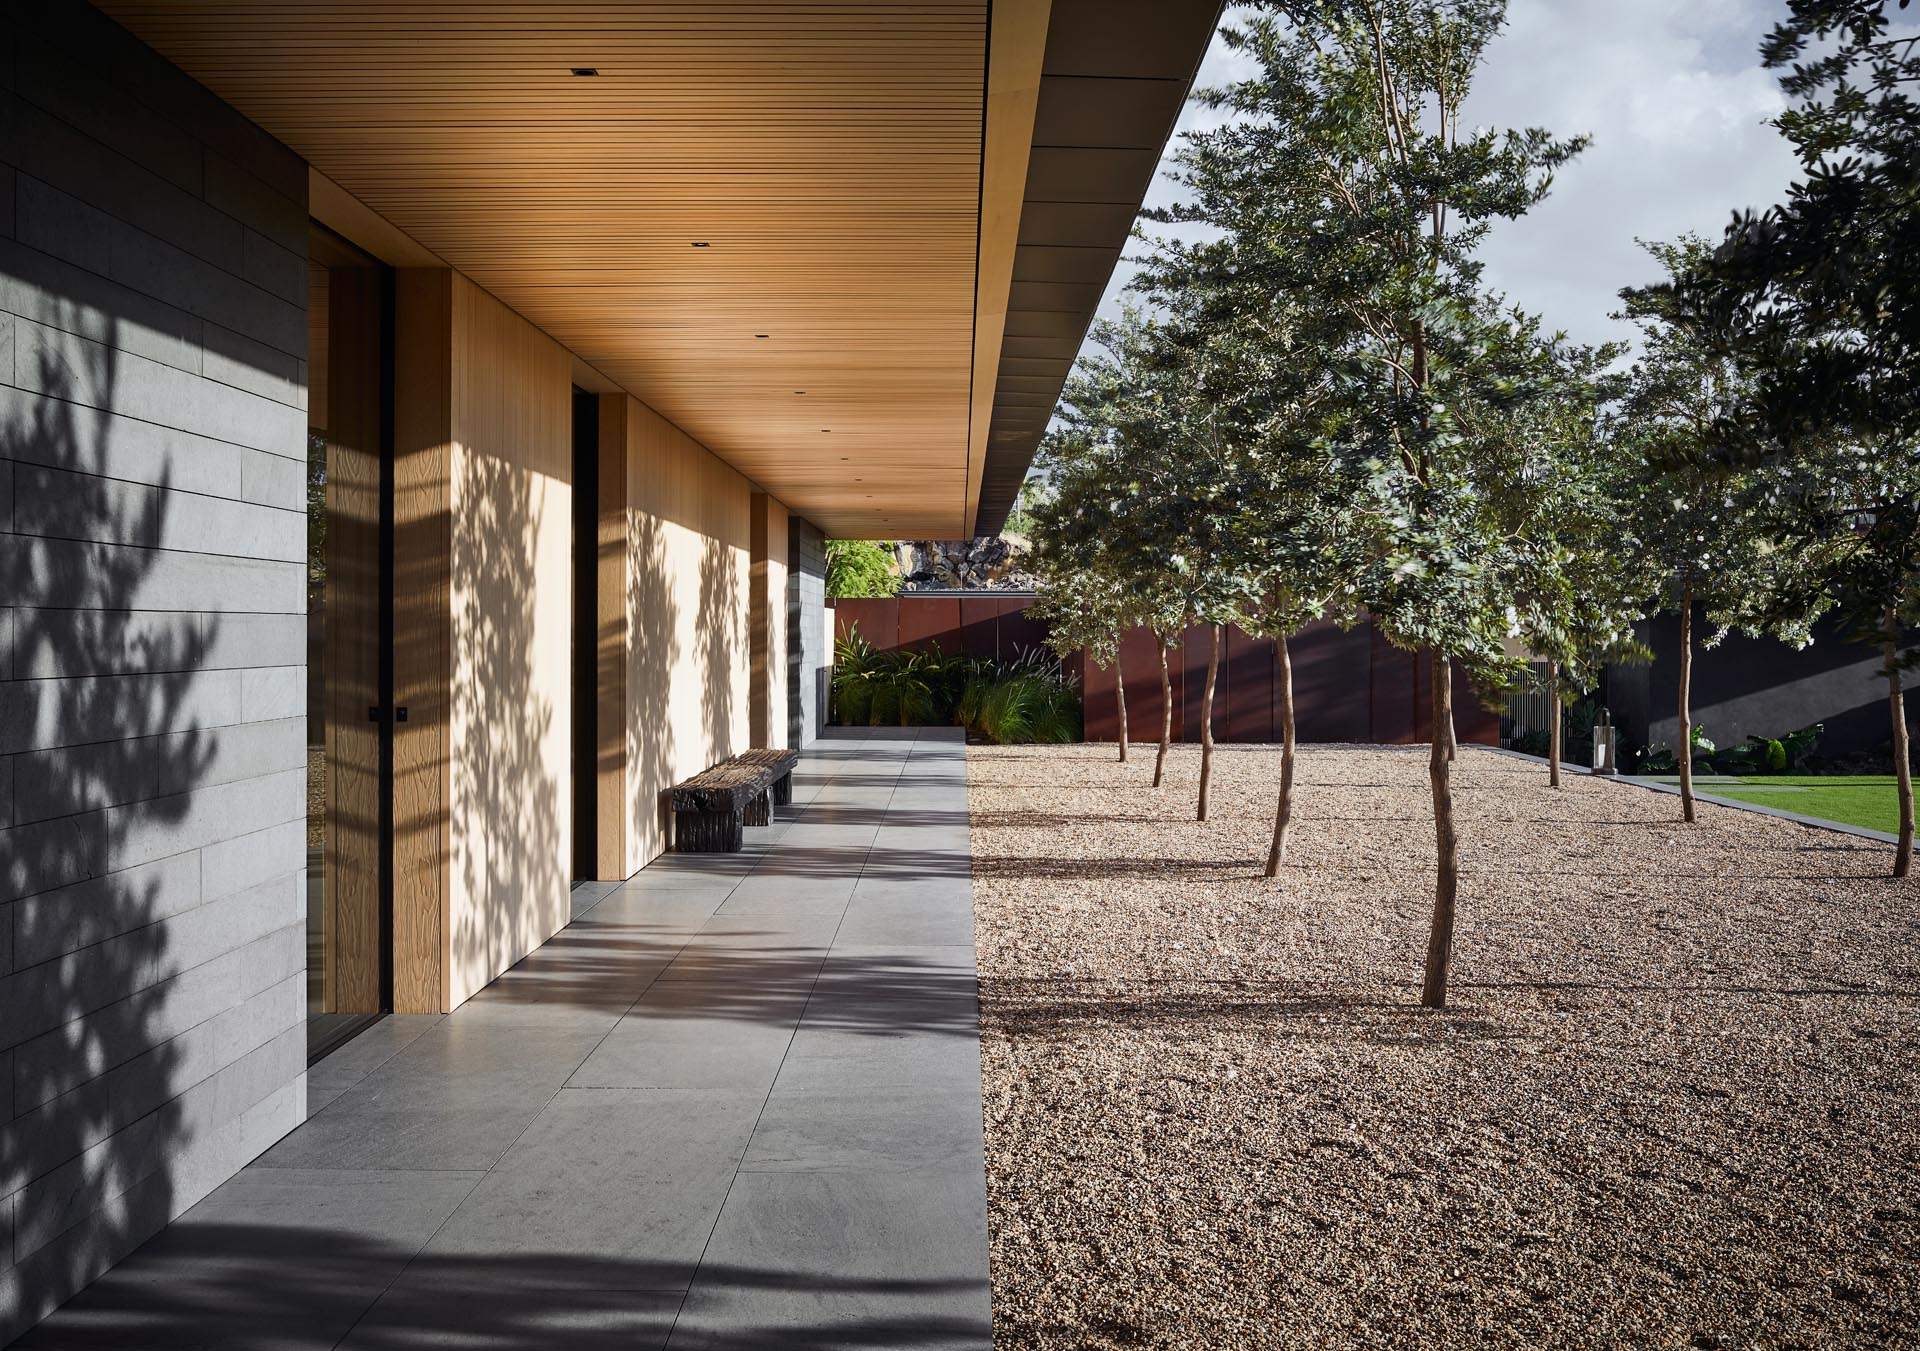 A home with a courtyard and covered path.